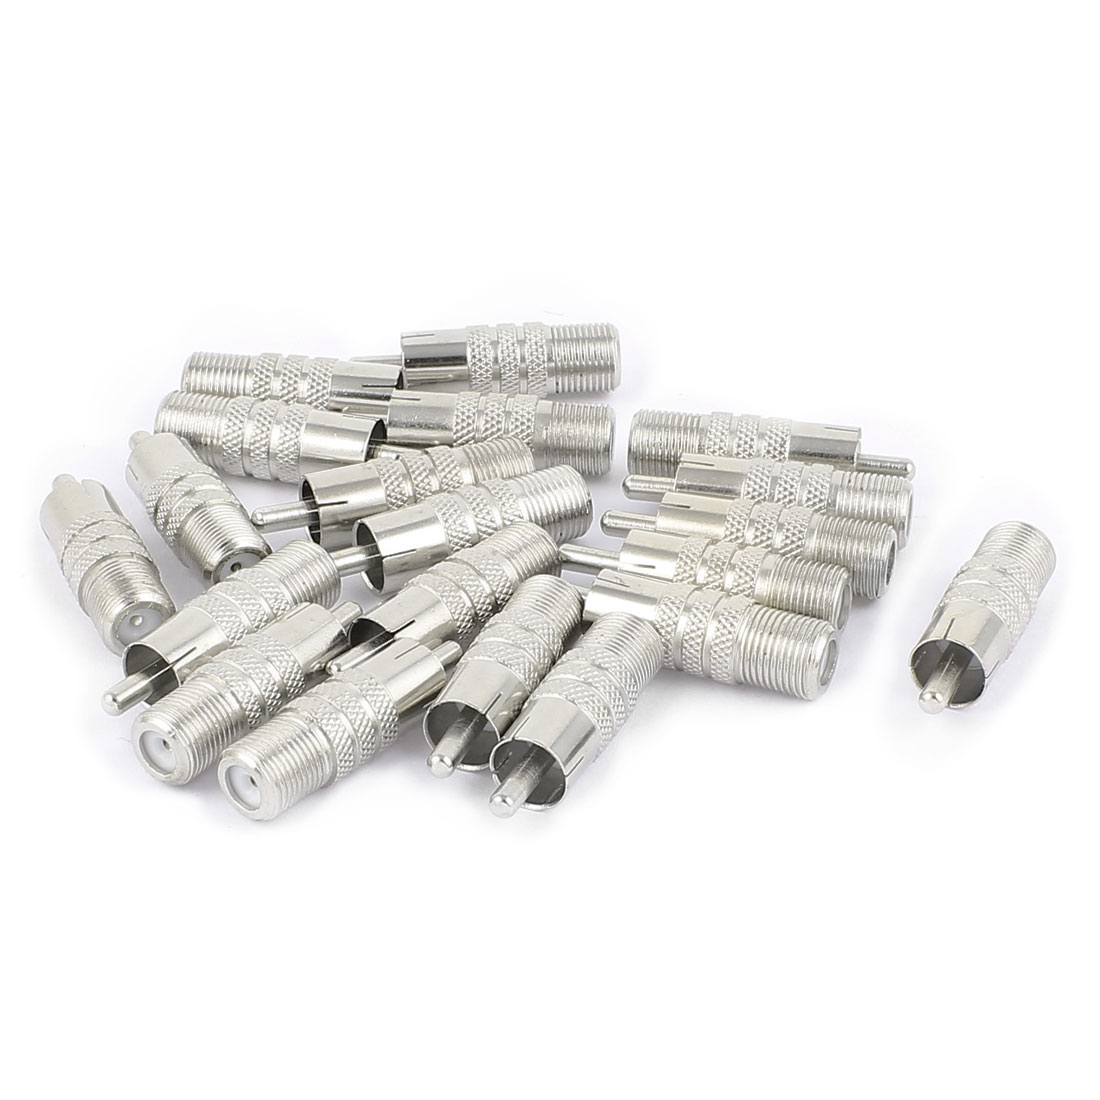 20 Pcs F-Type Female to RCA Male RF Adapter Connector Coax Jack Silver Tone